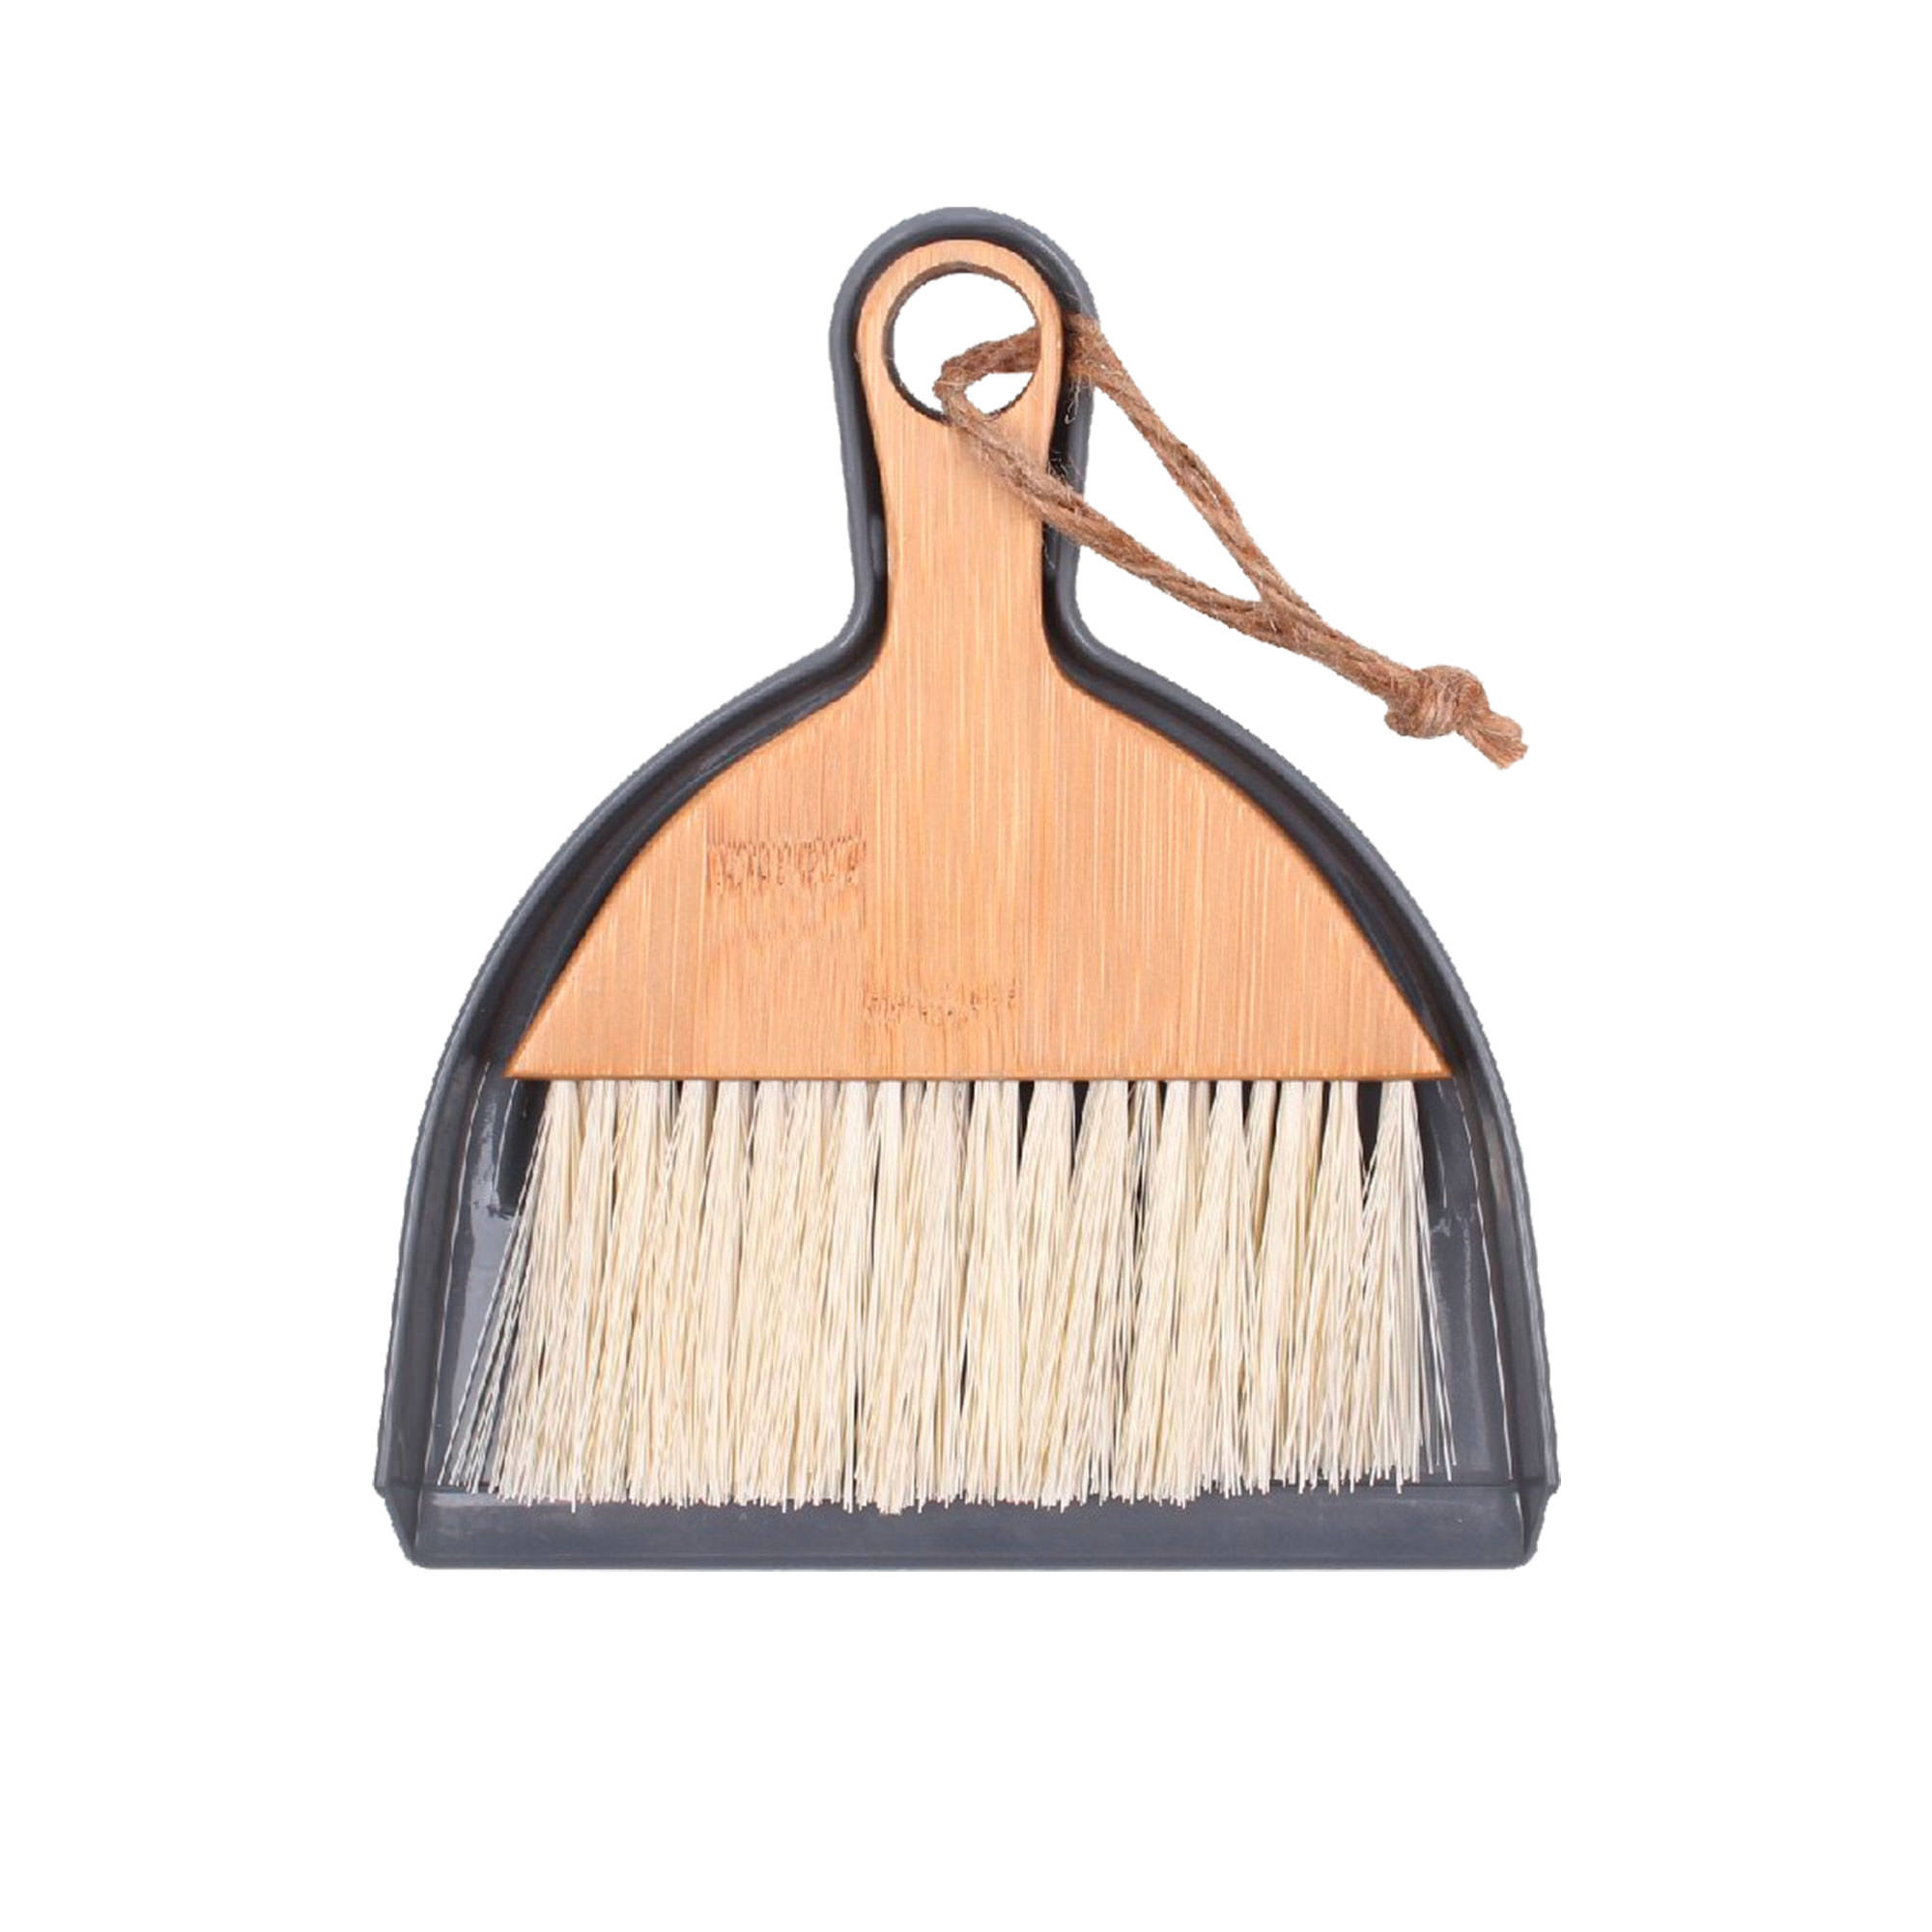 White Magic Eco Basics Mini Dustpan & Brush Bamboo